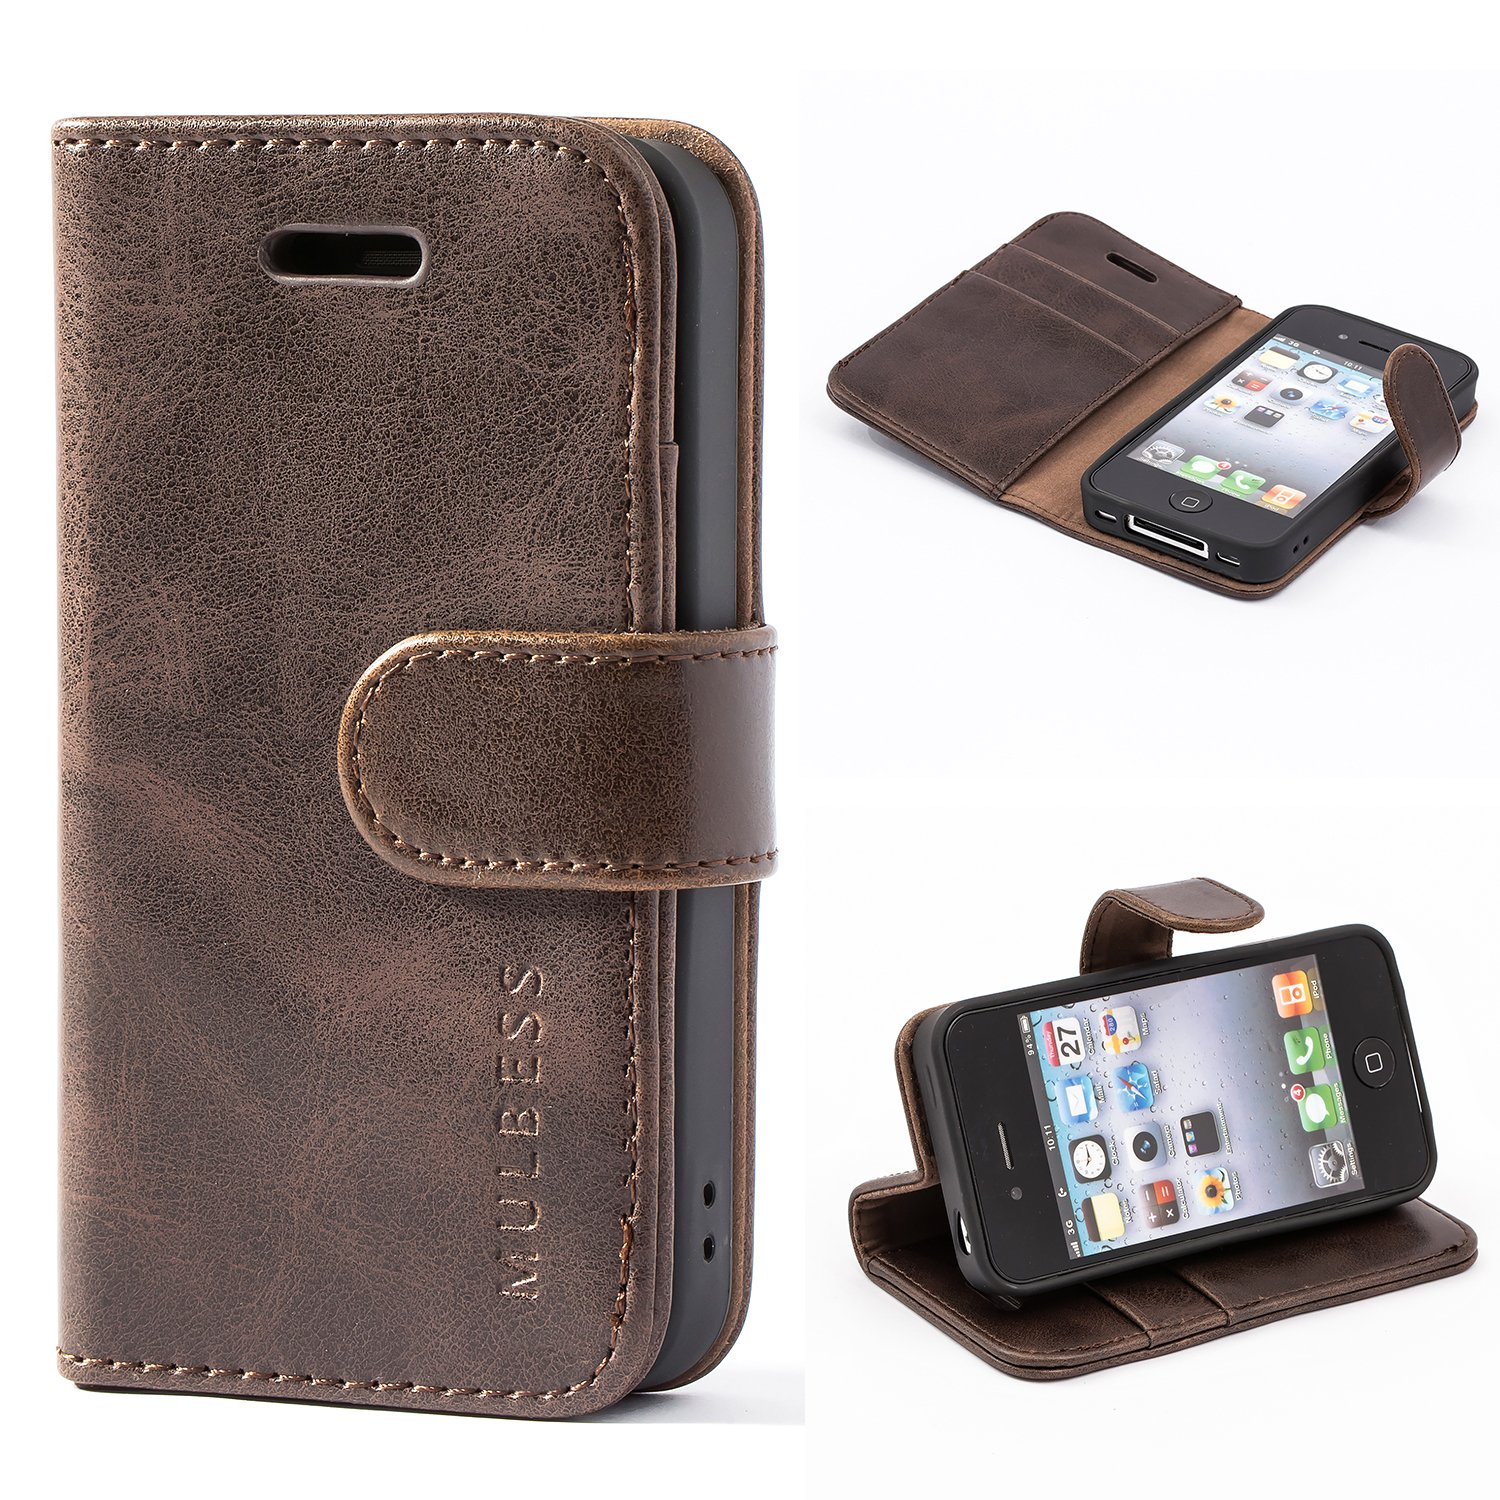 sports shoes 7e9f6 9a1d4 iPhone 4 / 4s Case,Mulbess Leather Case, Flip Folio Book Case, Money Pouch  Wallet Cover with Kick Stand for Apple iPhone 4 / 4s,Coffee Brown